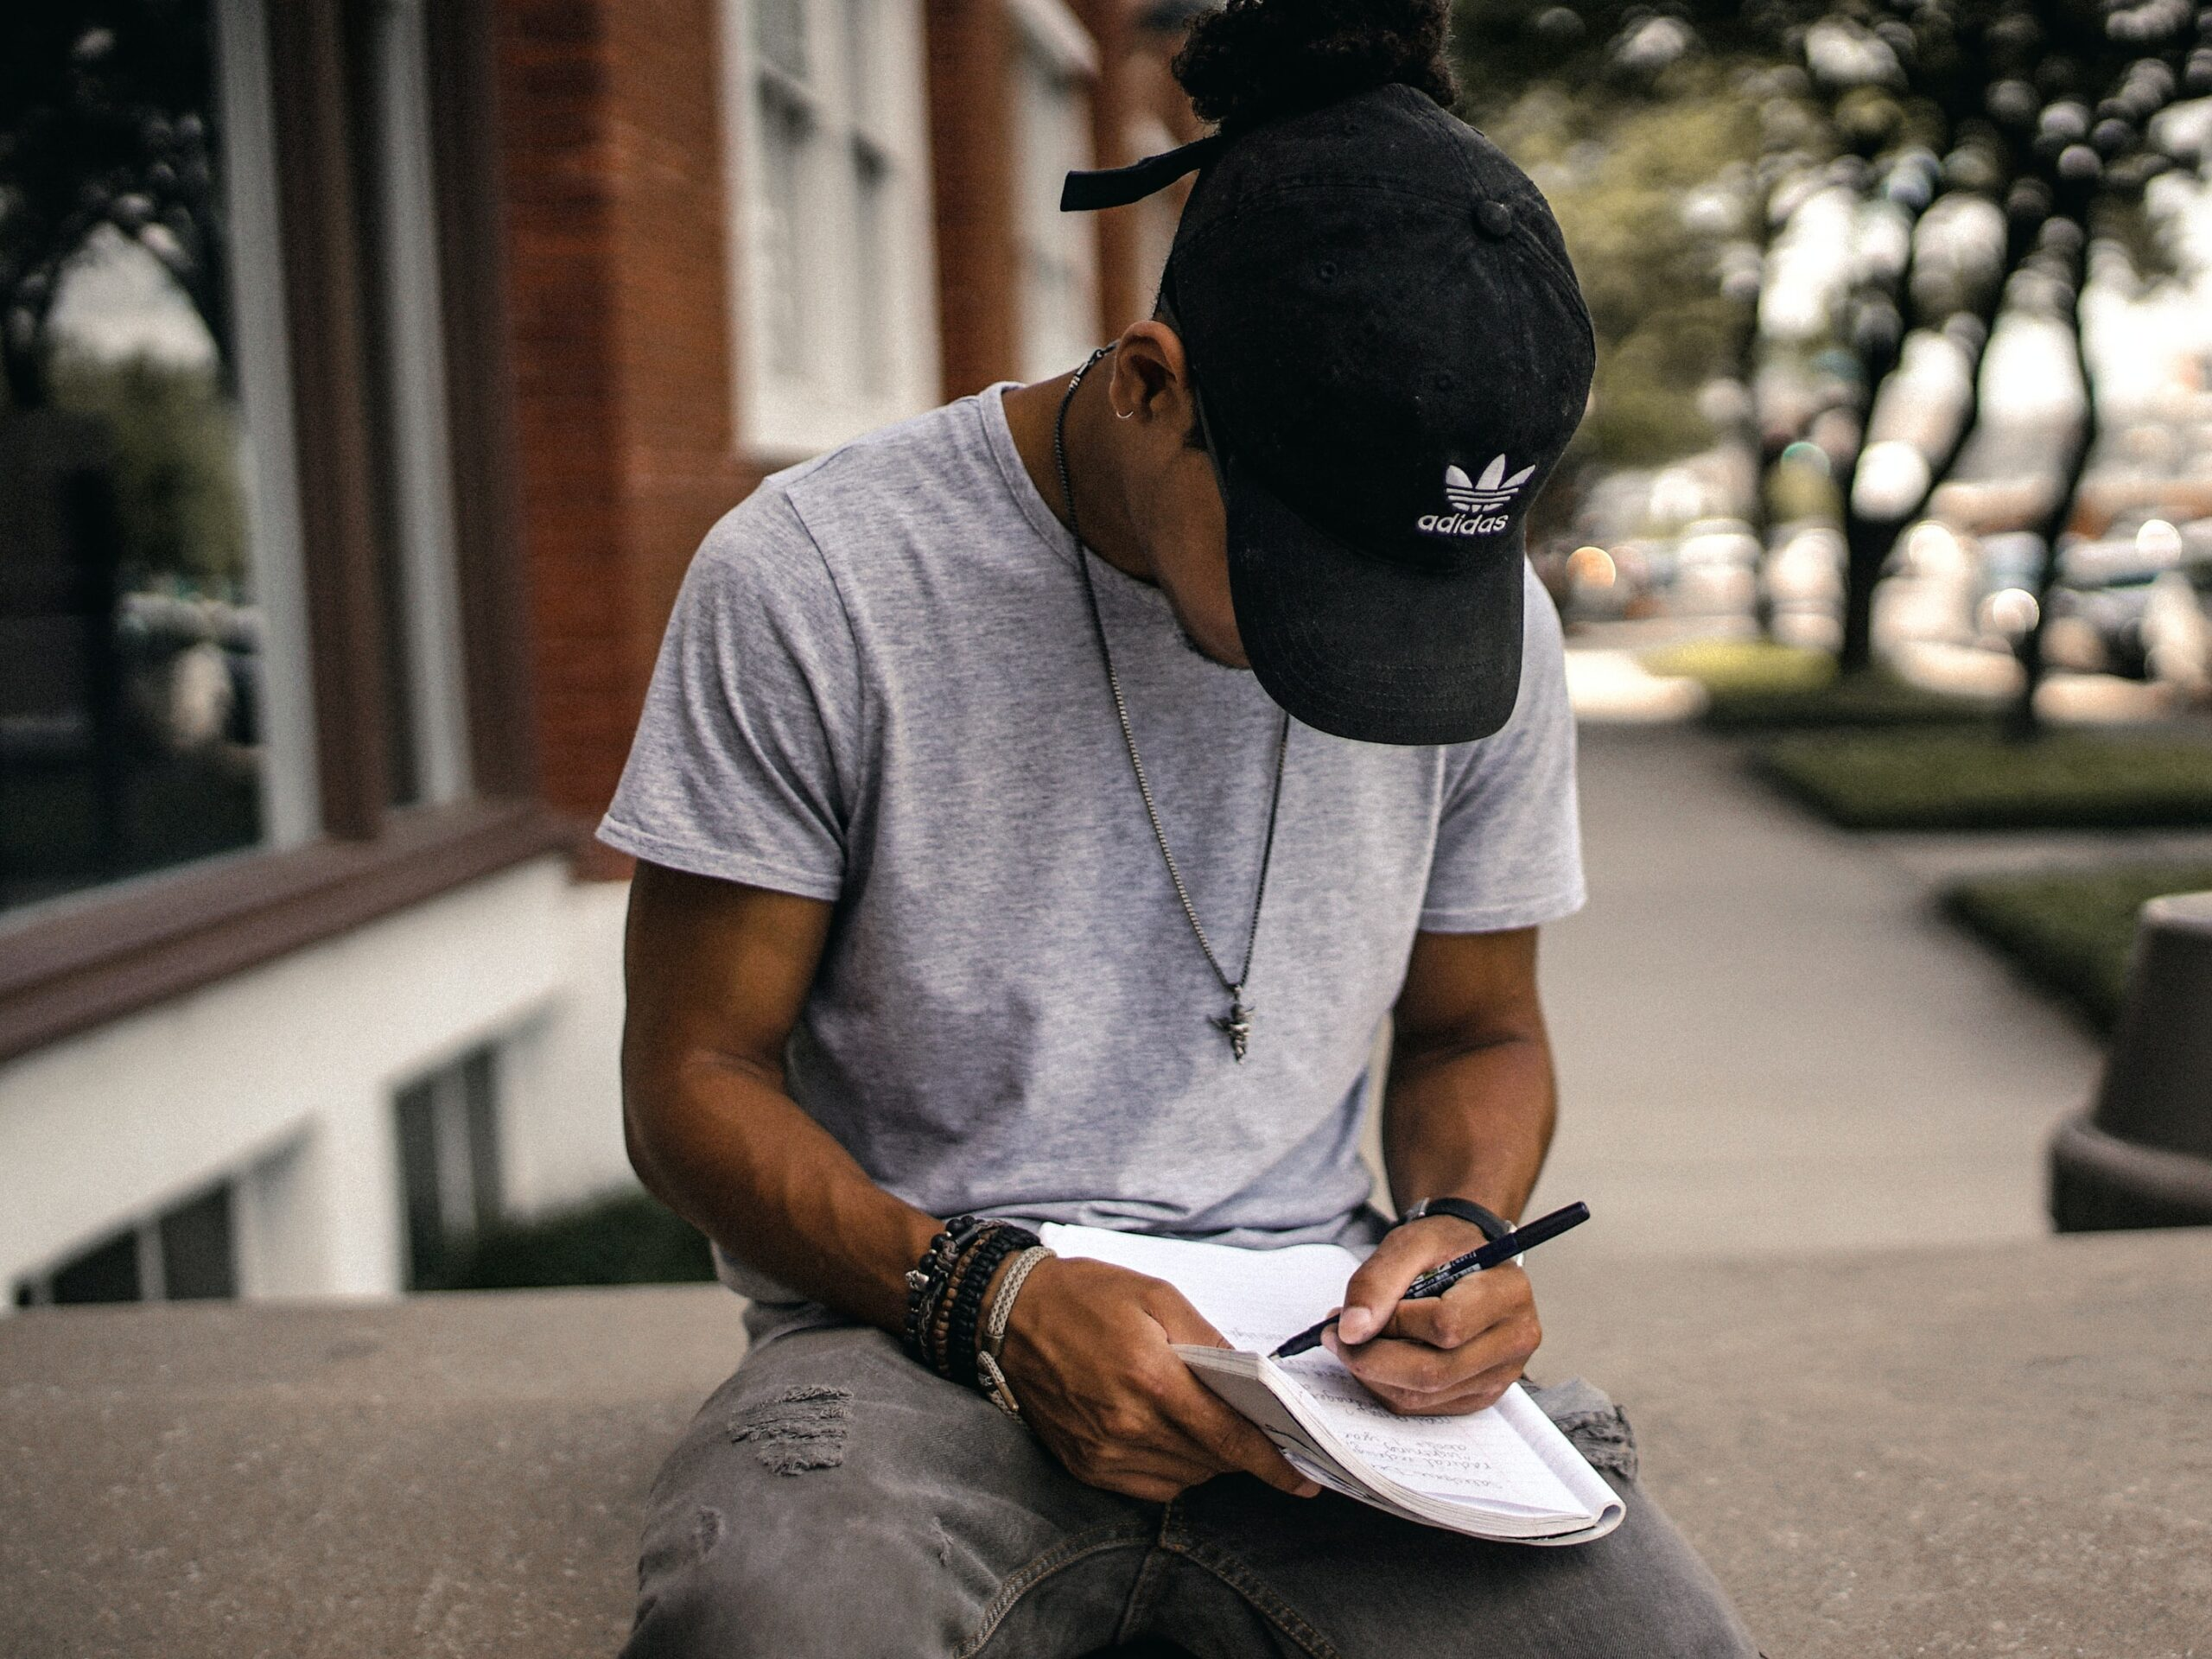 Discover the science based benefits of journaling